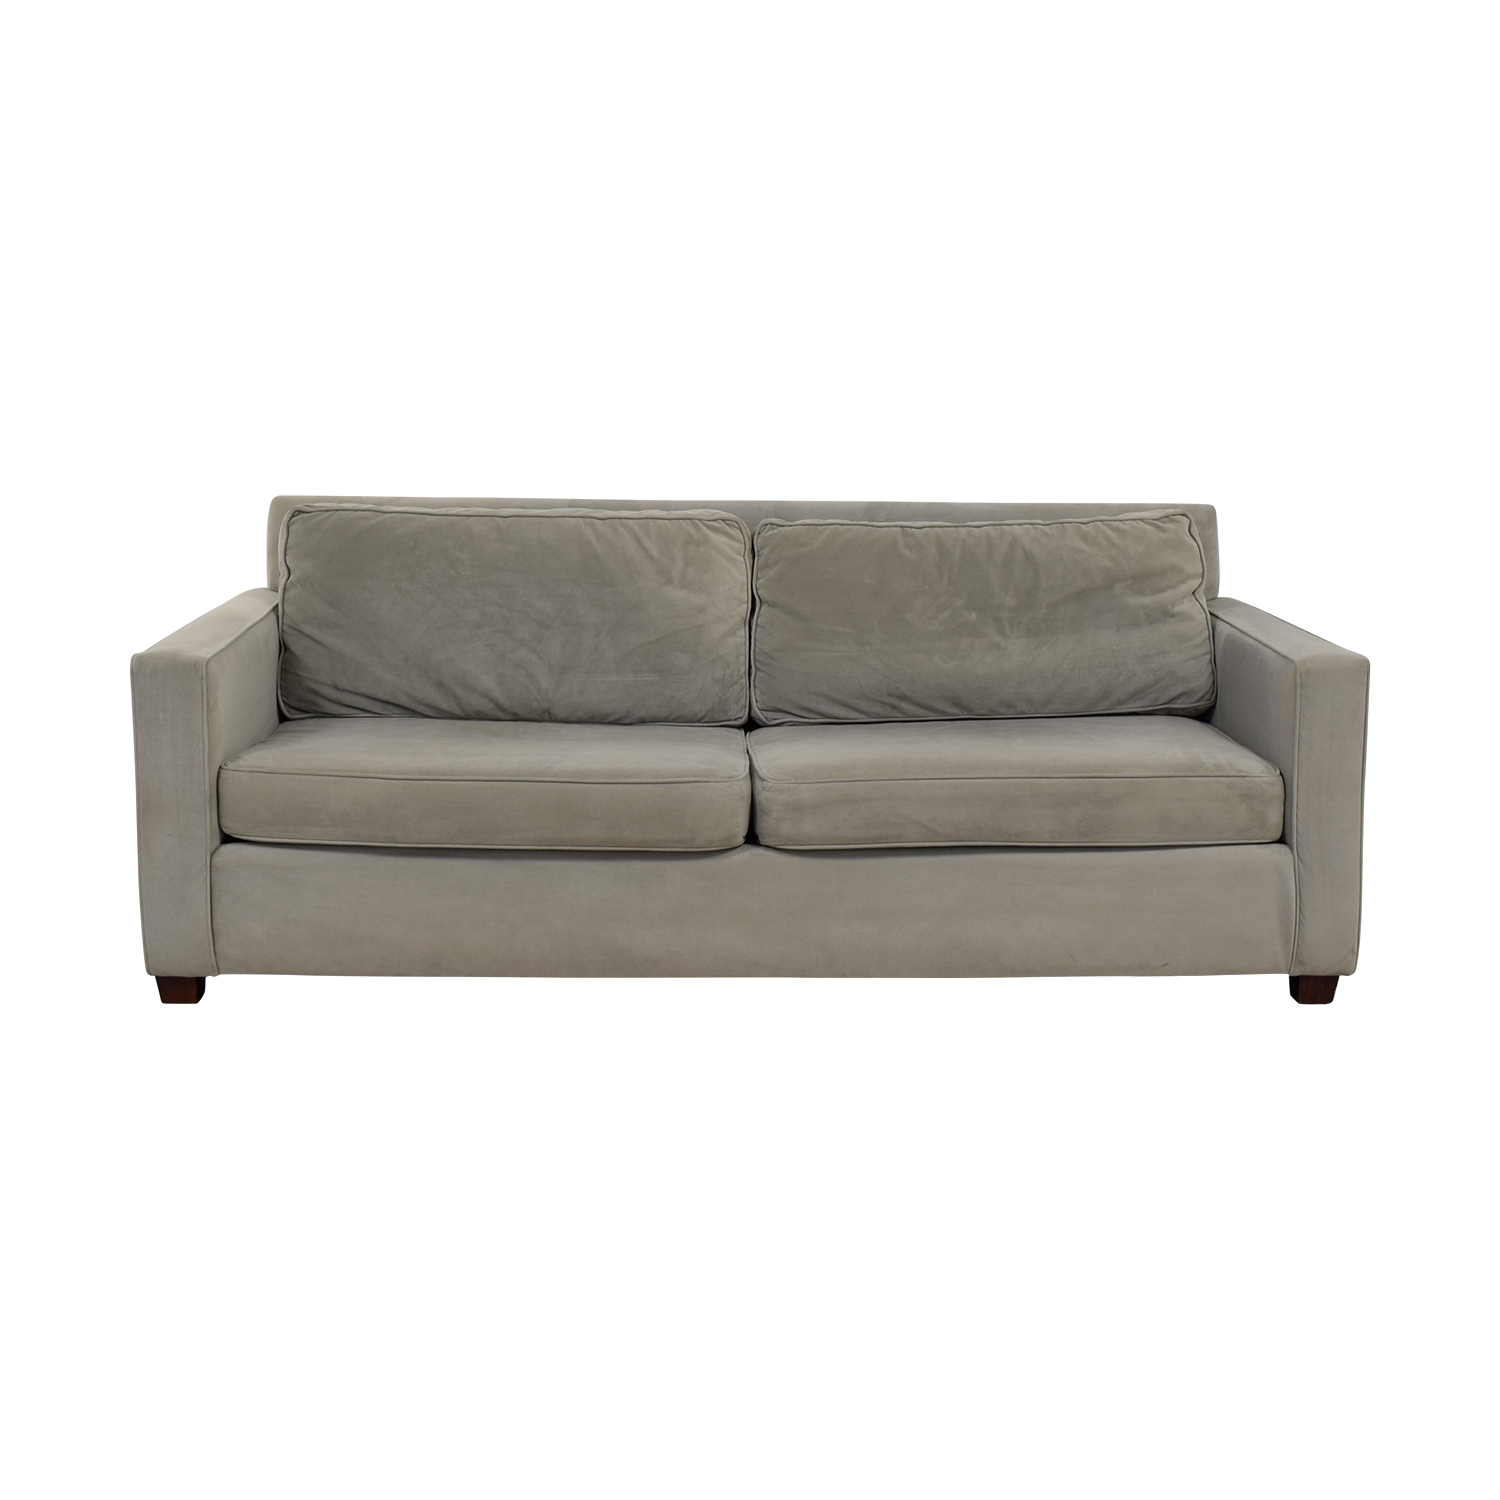 West Elm West Elm Henry Dove Grey Two-Cushion Sofa nyc